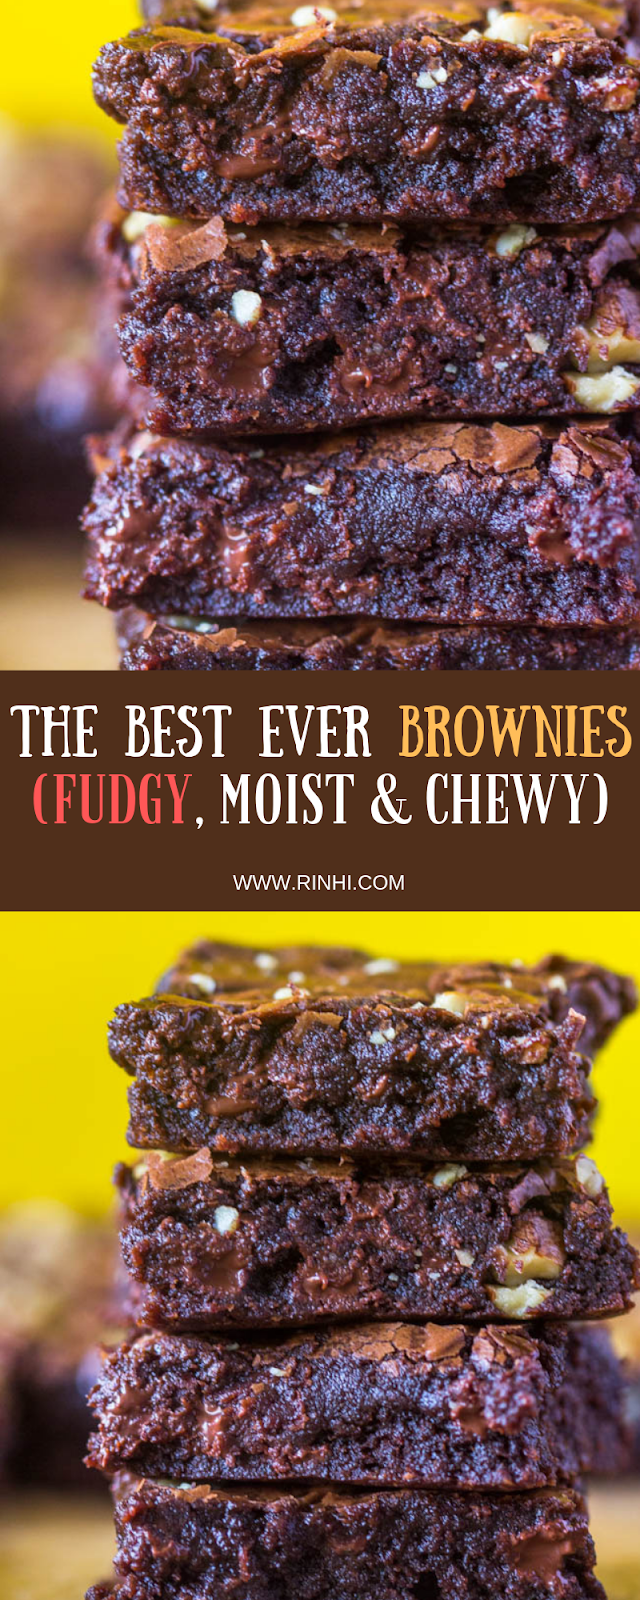 The Best Ever Brownies Fudgy Moist Chewy Best Ever Brownies